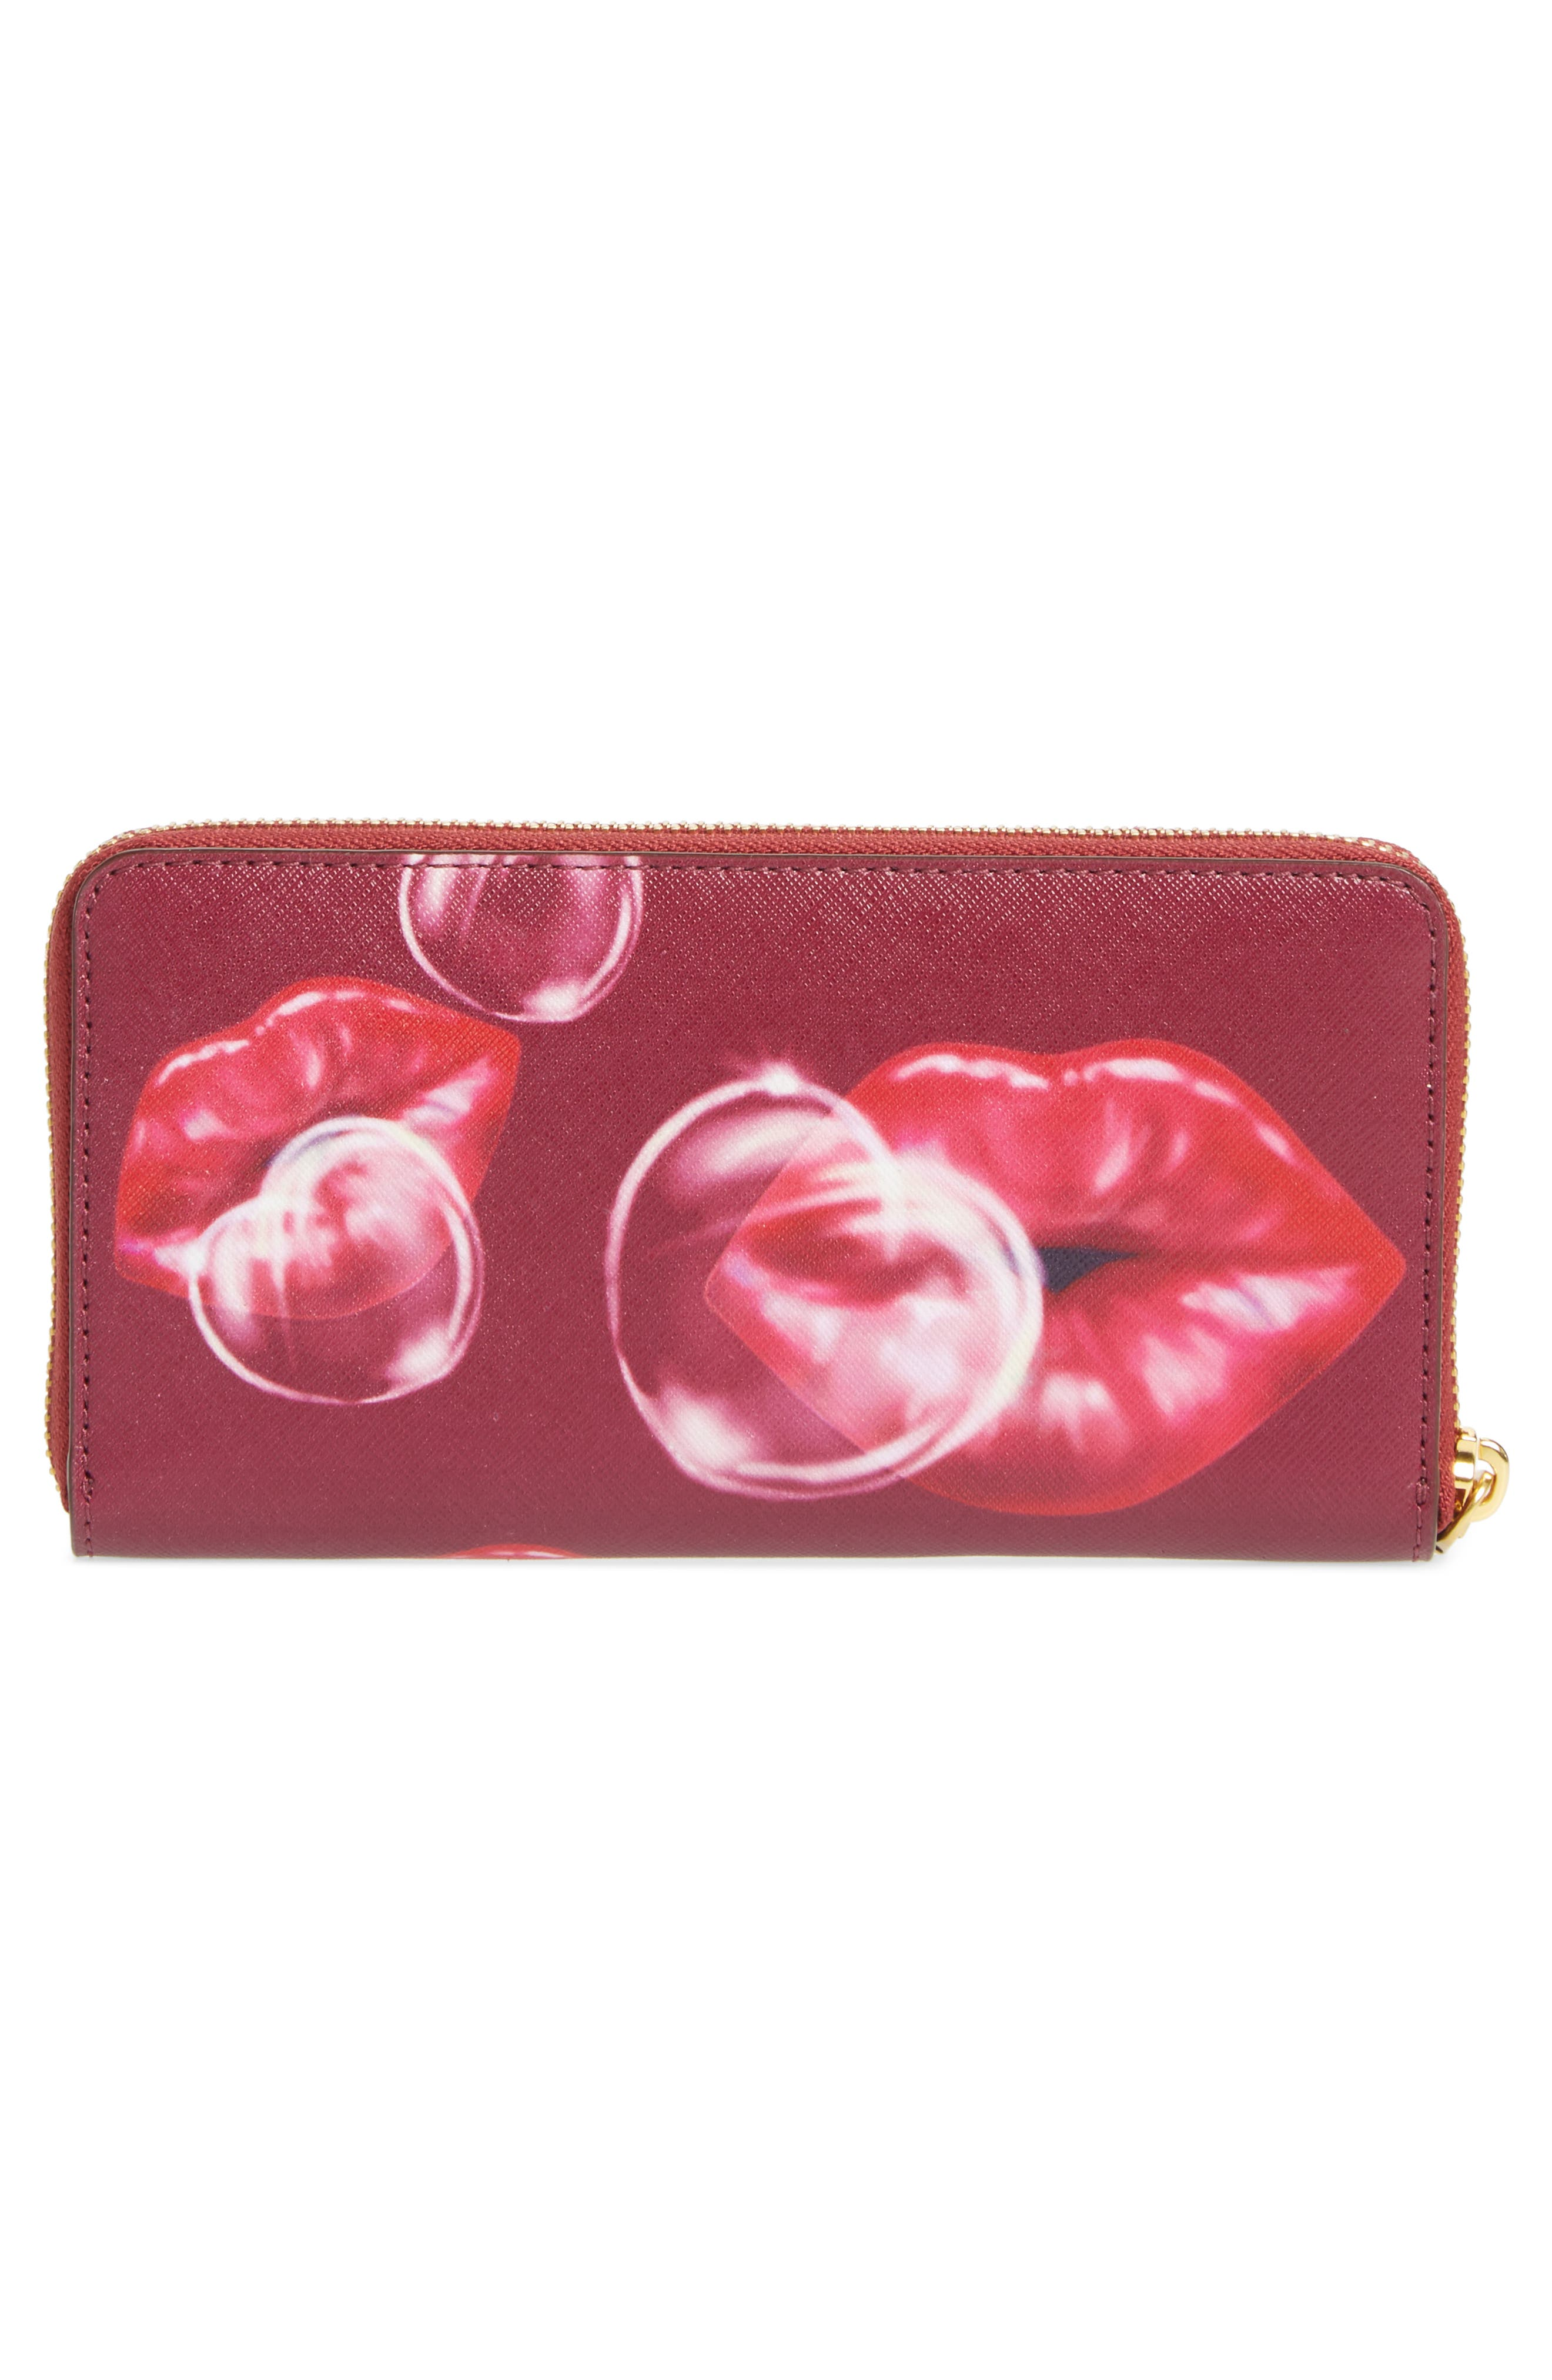 Lips Saffiano Leather Zip Around Wallet,                             Alternate thumbnail 3, color,                             653